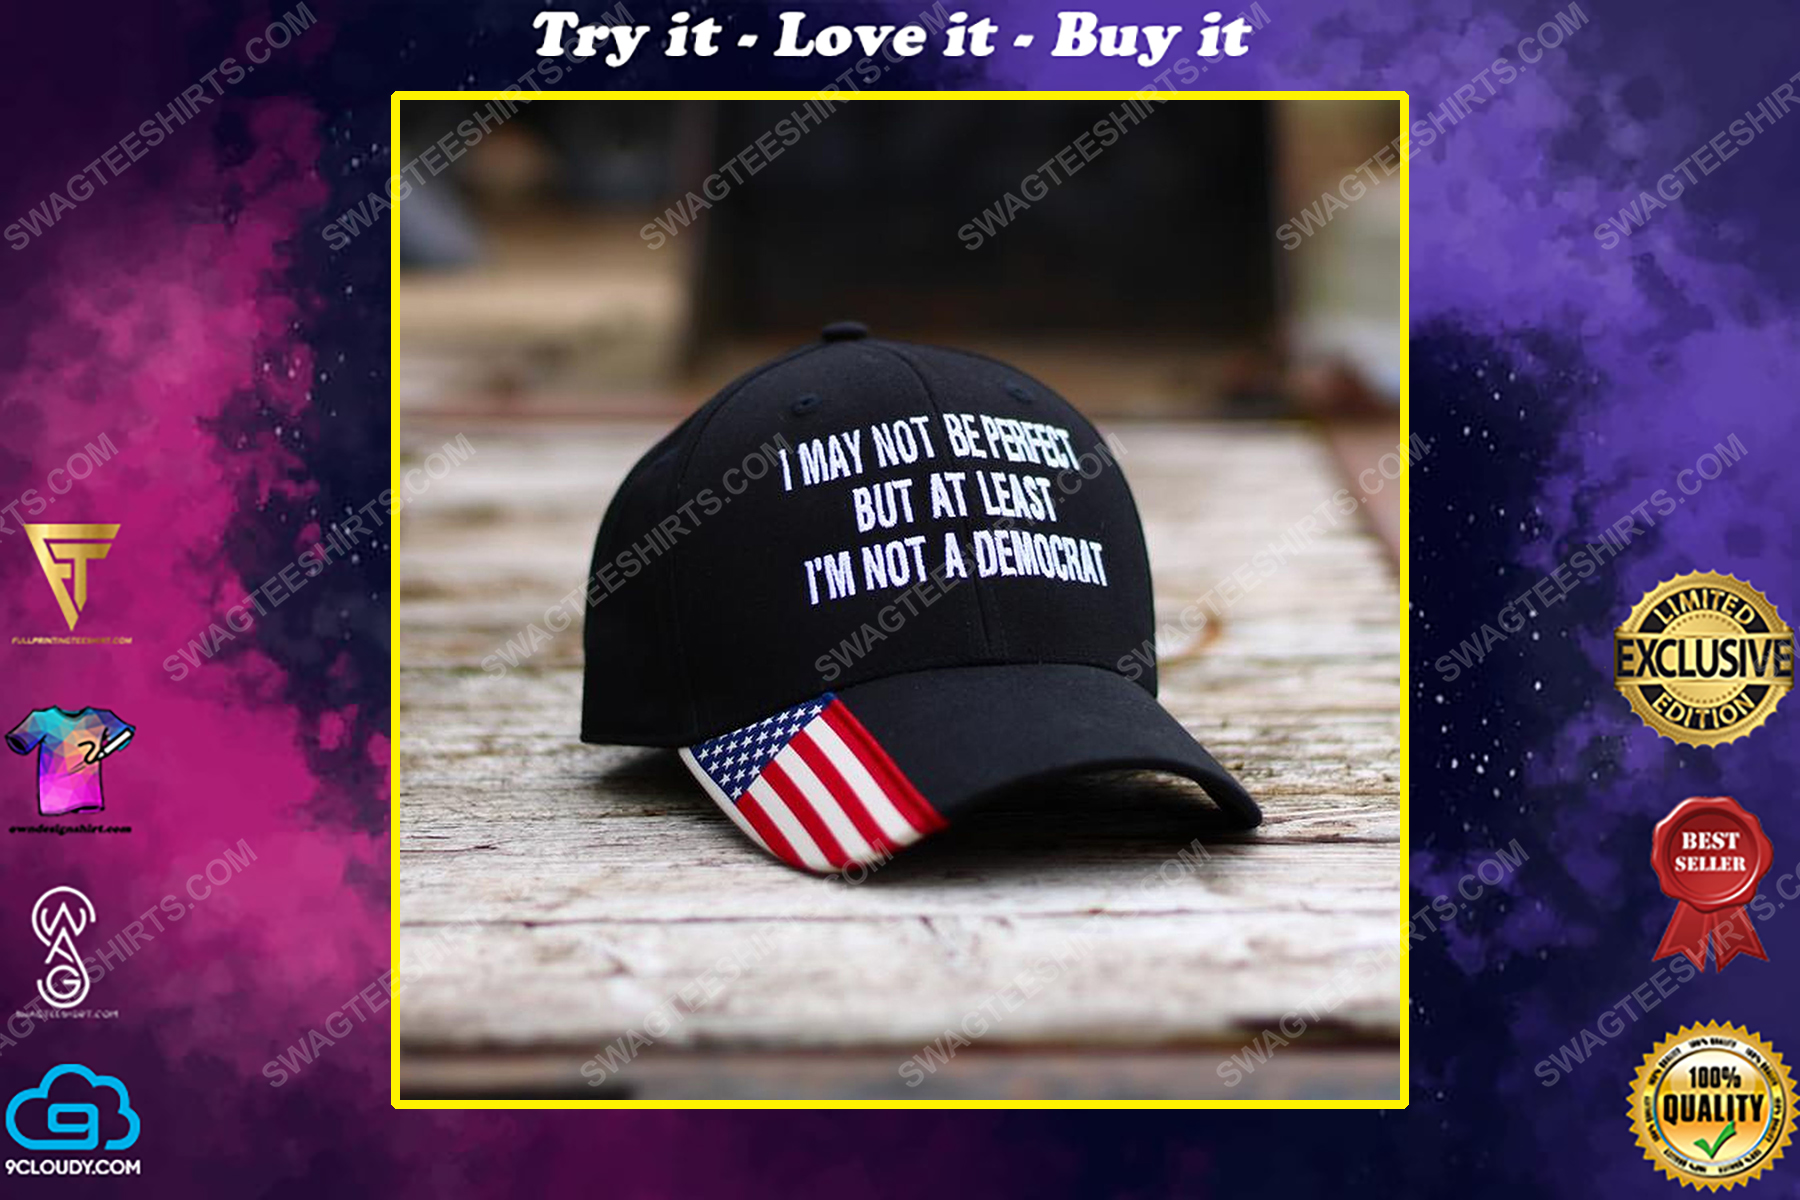 I may not be perfect but at least i'm not a democrat american flag full print classic hat